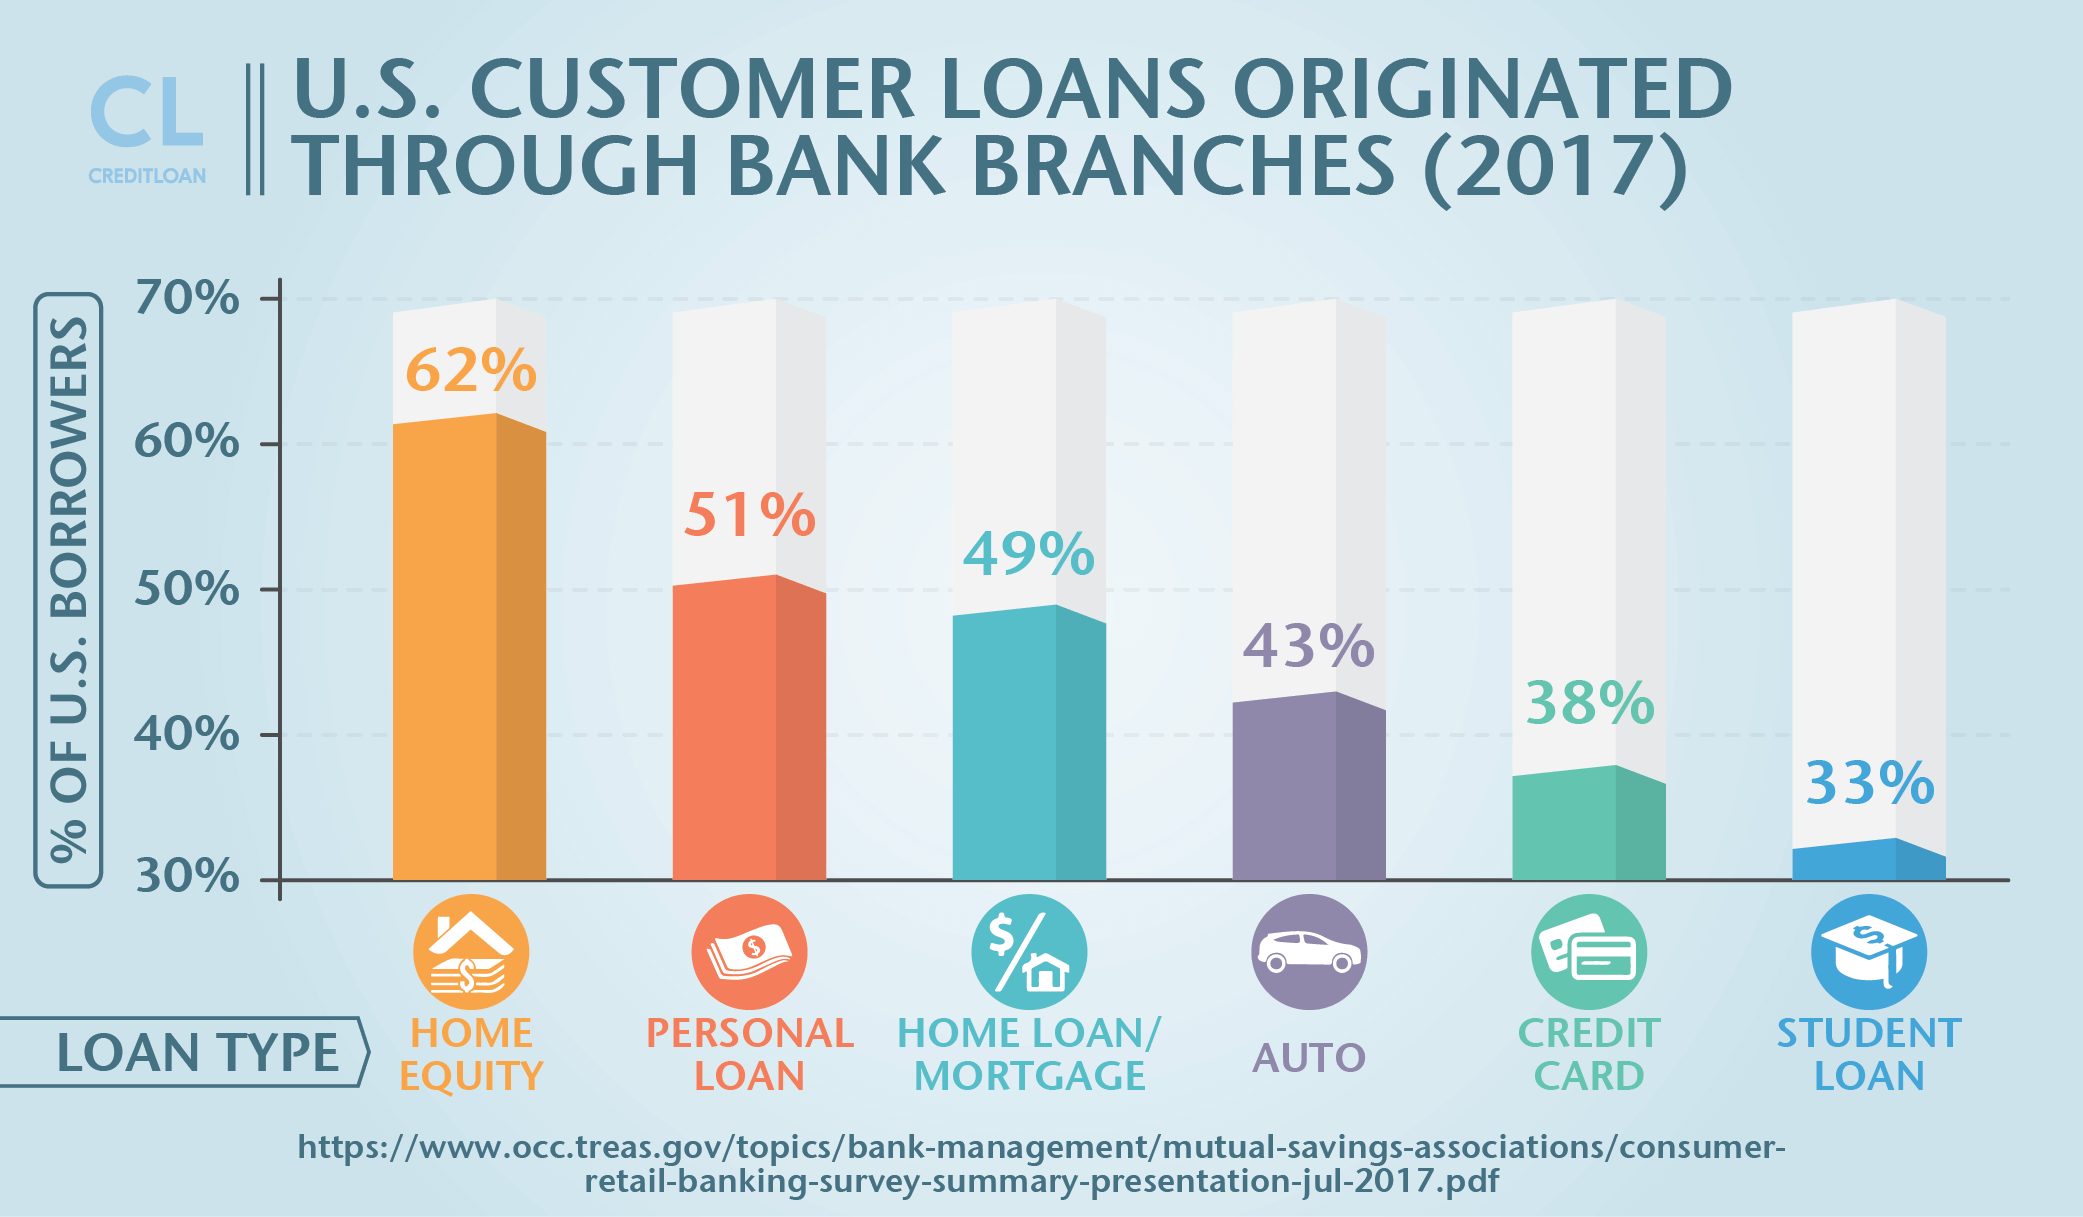 U.S. Customer Loans Originated Through Bank Branches